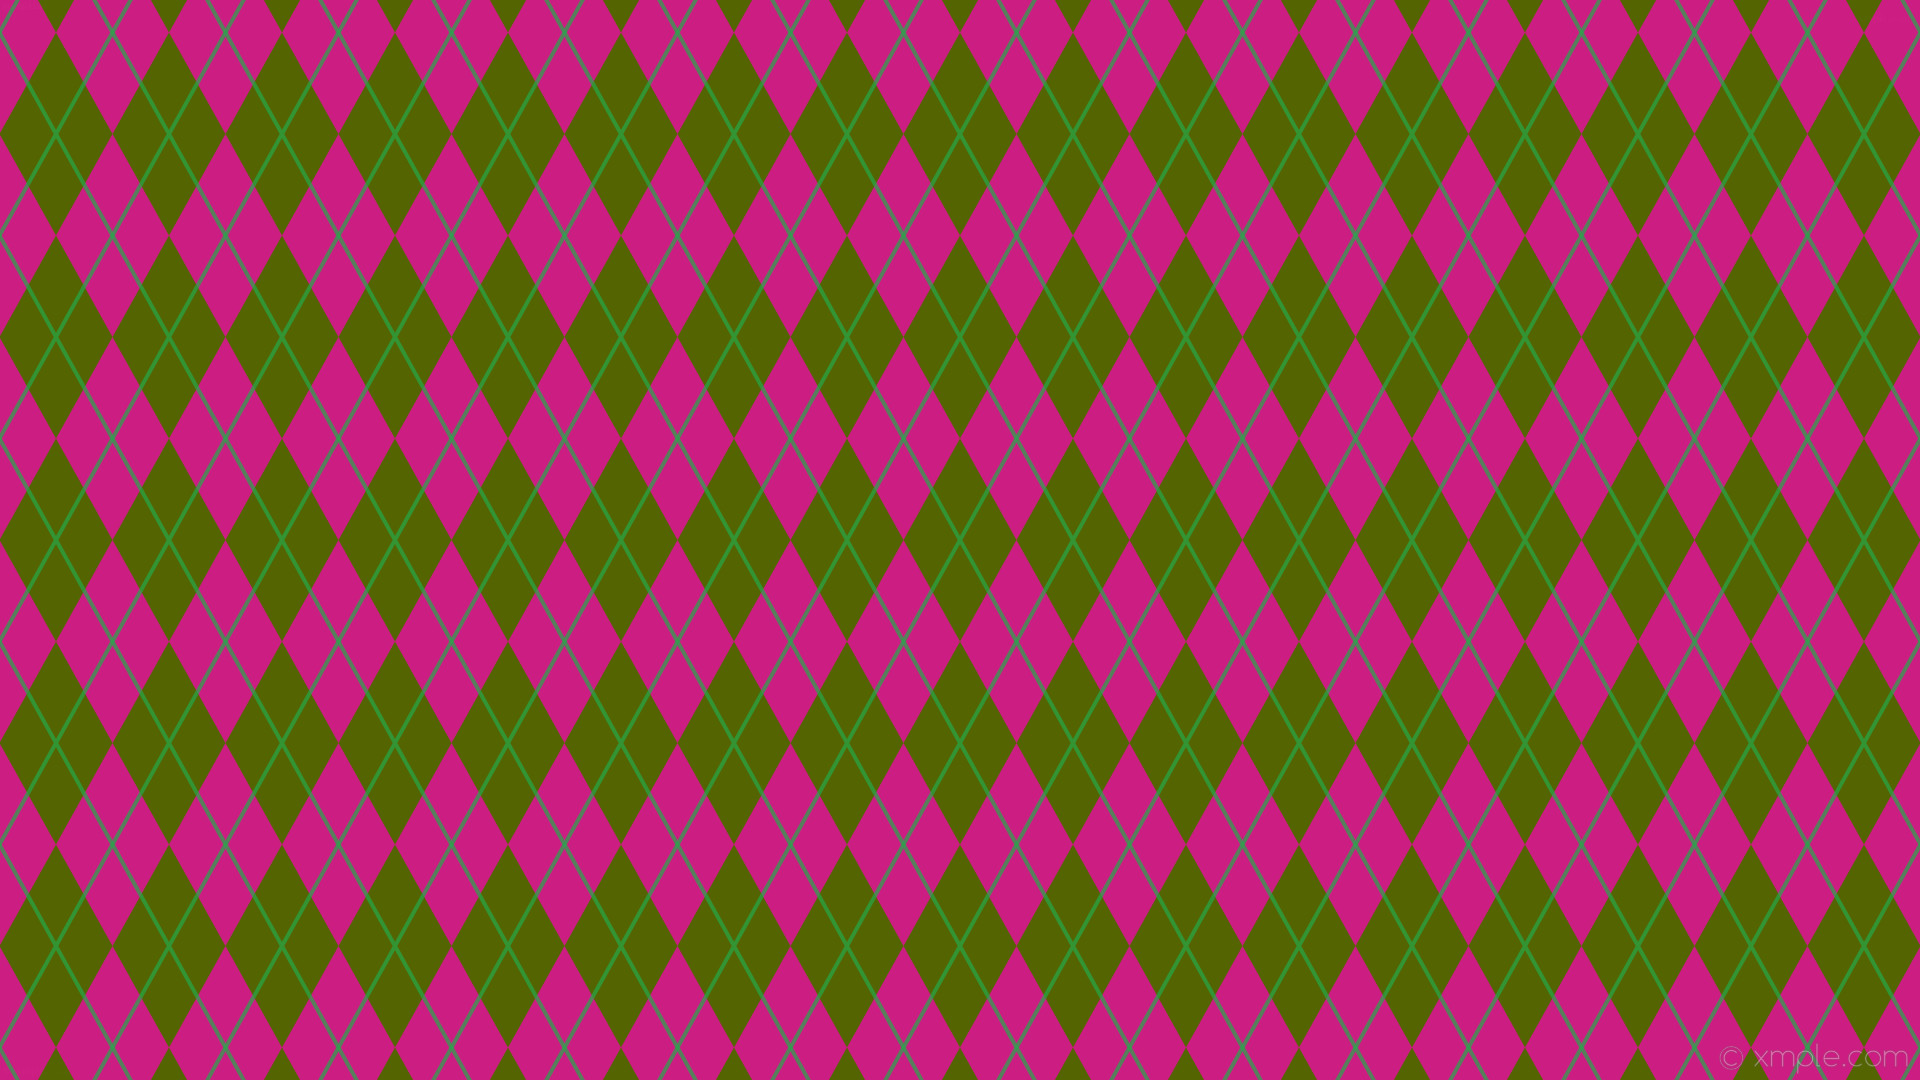 Res: 1920x1080, wallpaper lines turquoise pink diamonds yellow argyle dark yellow #536400  #ff01b9 #26a84a 0